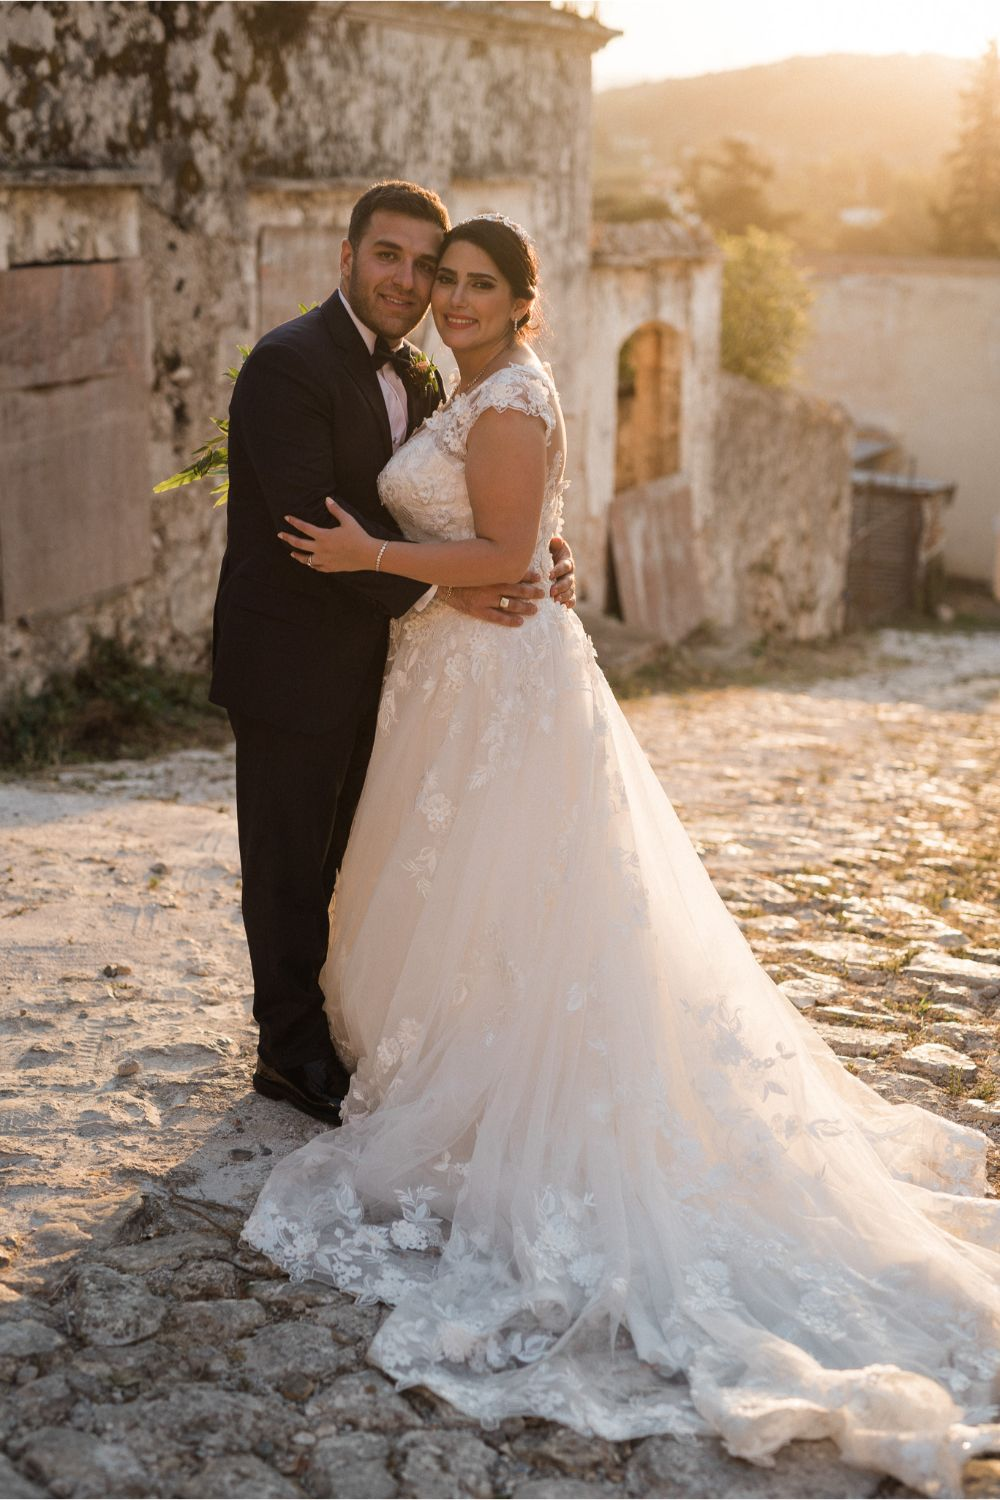 newlyweds photoshoot at rustic villa wedding in Crete